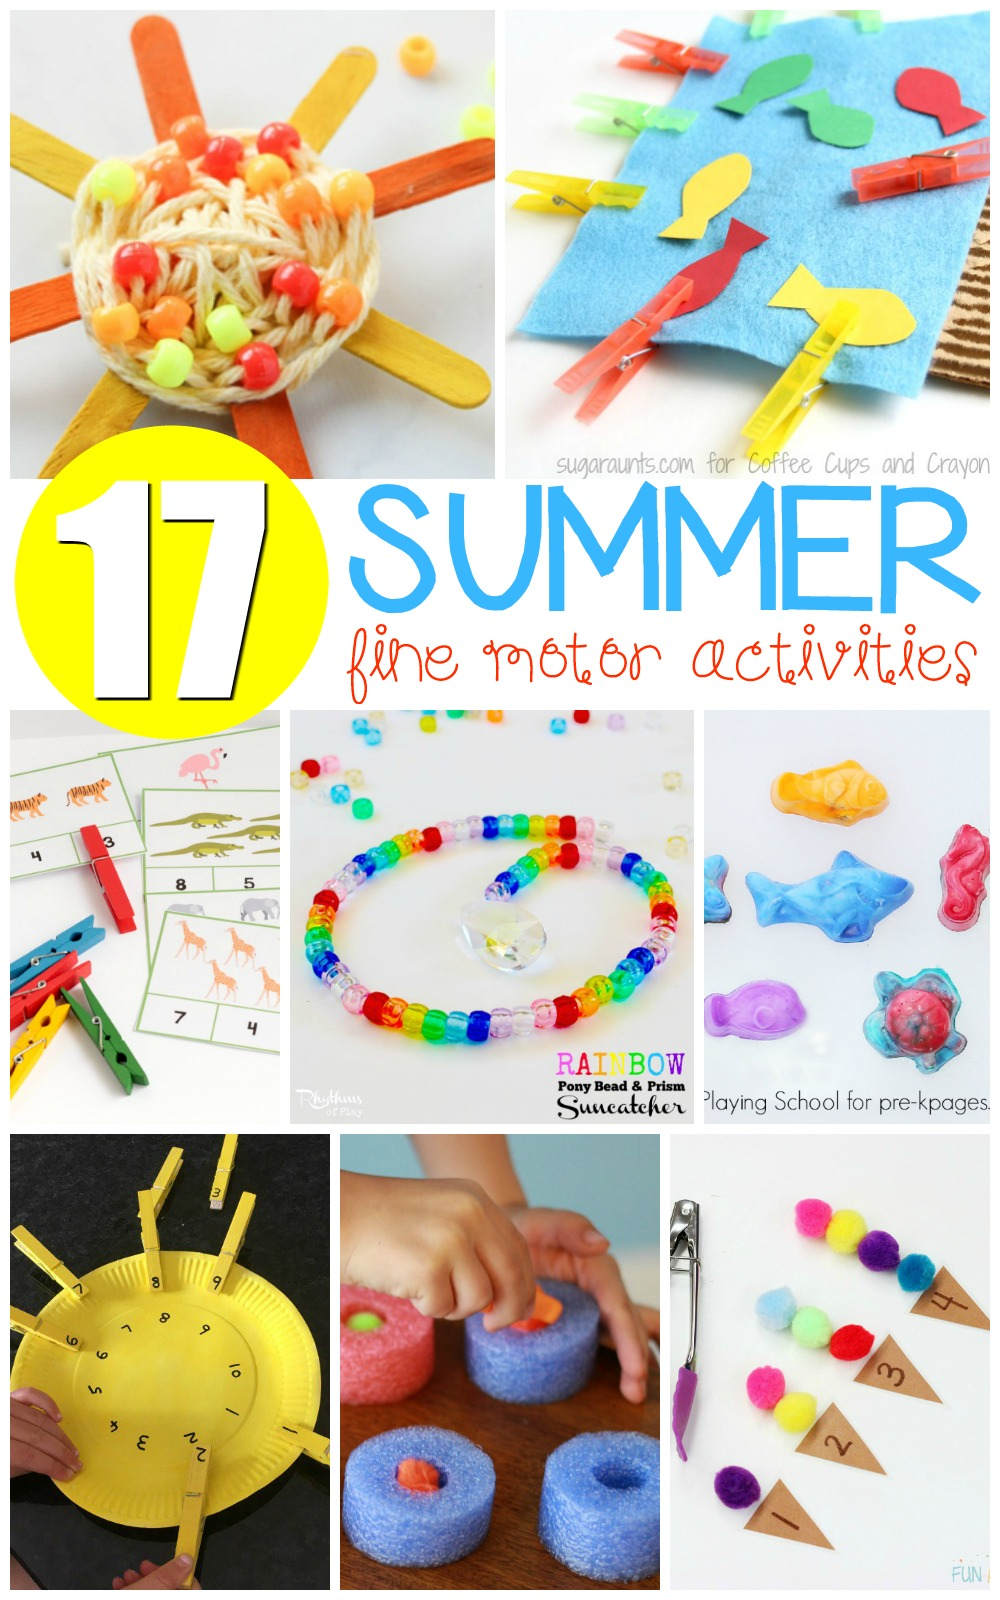 These summer fine motor activities will help kids improve fine motor skills that will help with